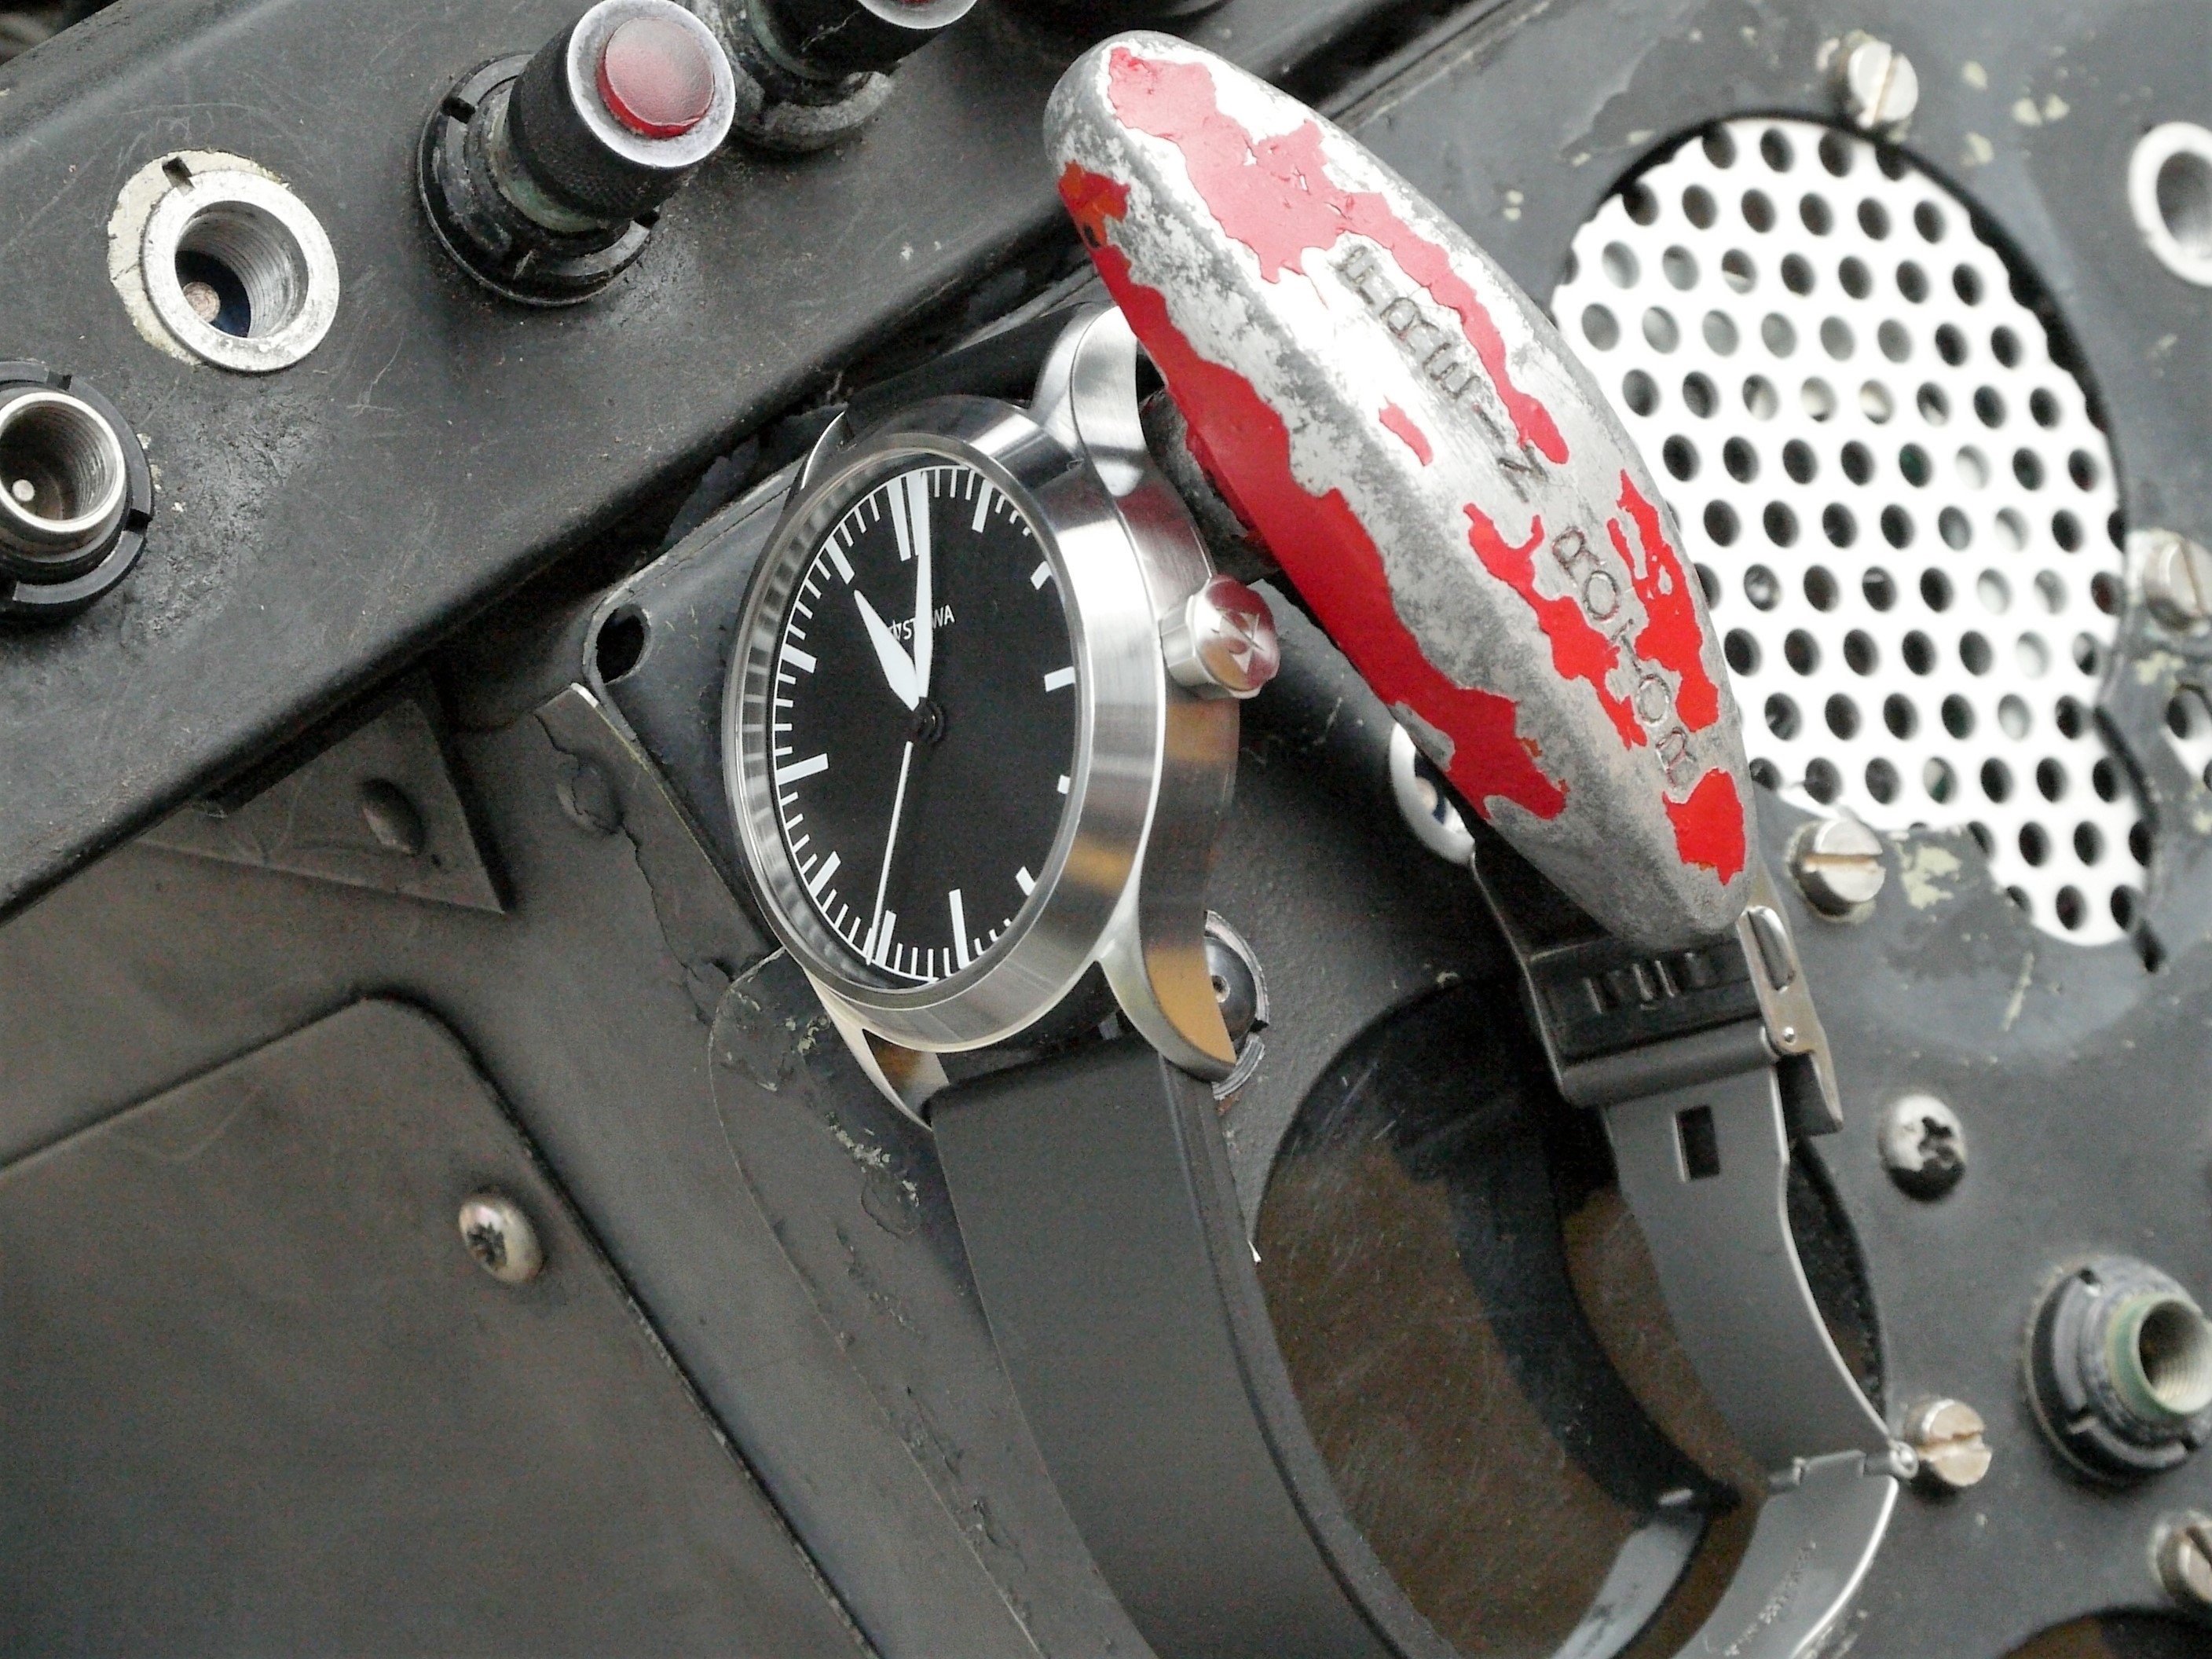 Mike's T02 Flieger